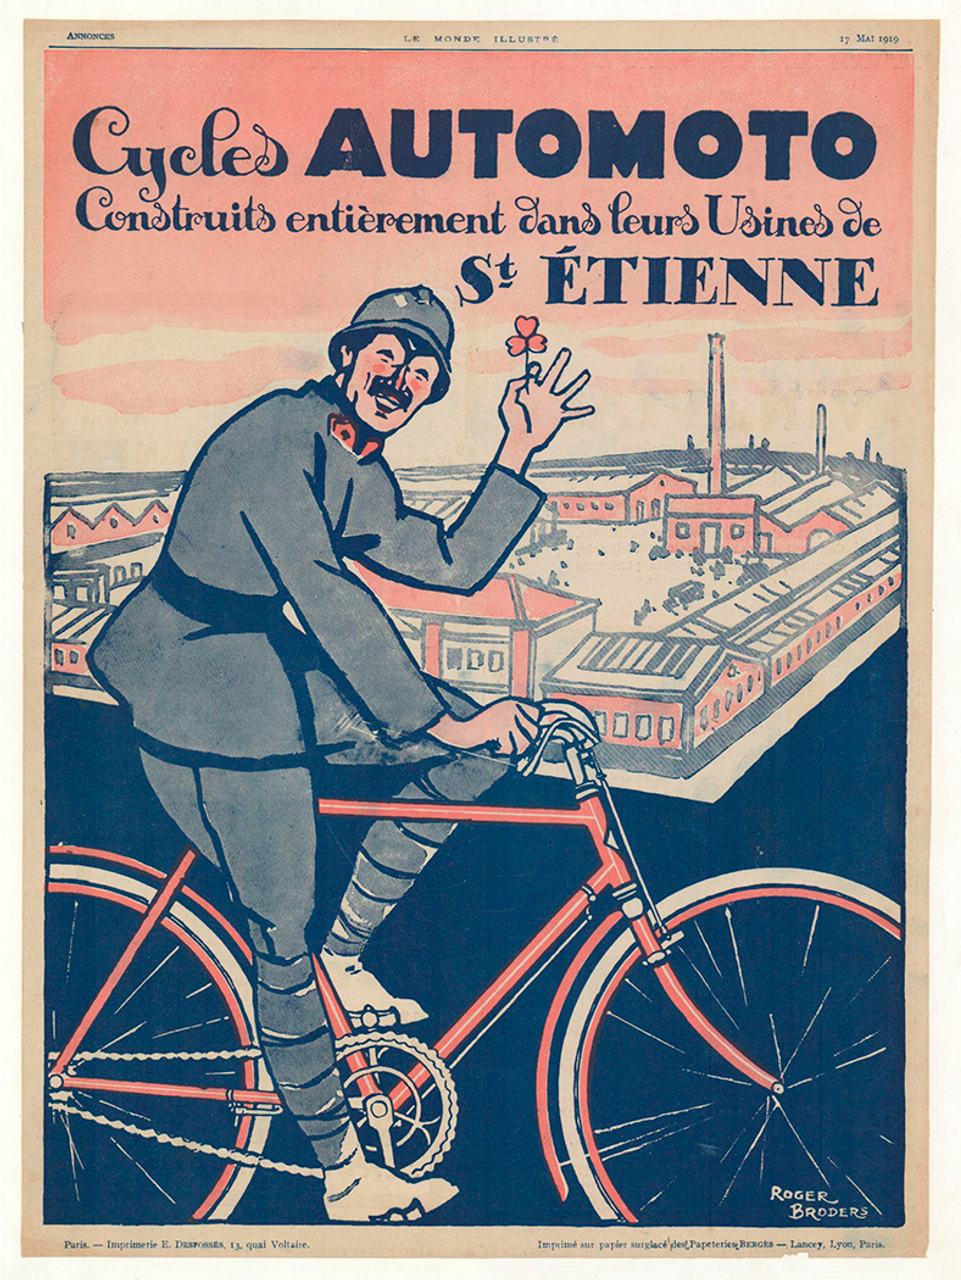 Cycles Automoto Original Vintage Bicycle Poster by Broders